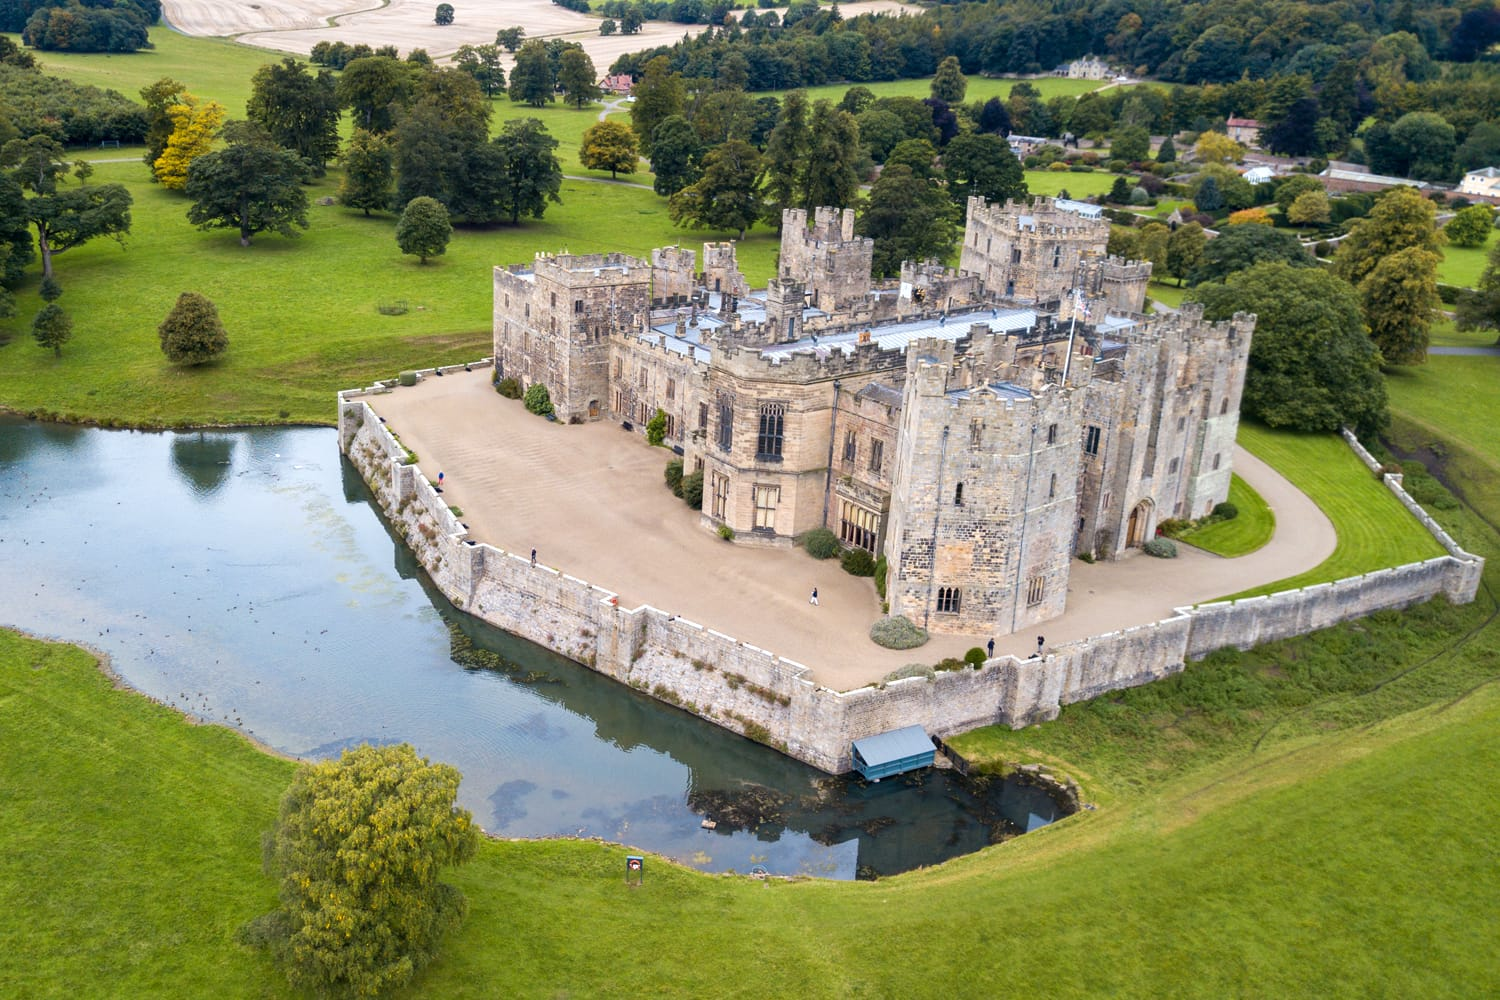 Raby Castle in England, UK